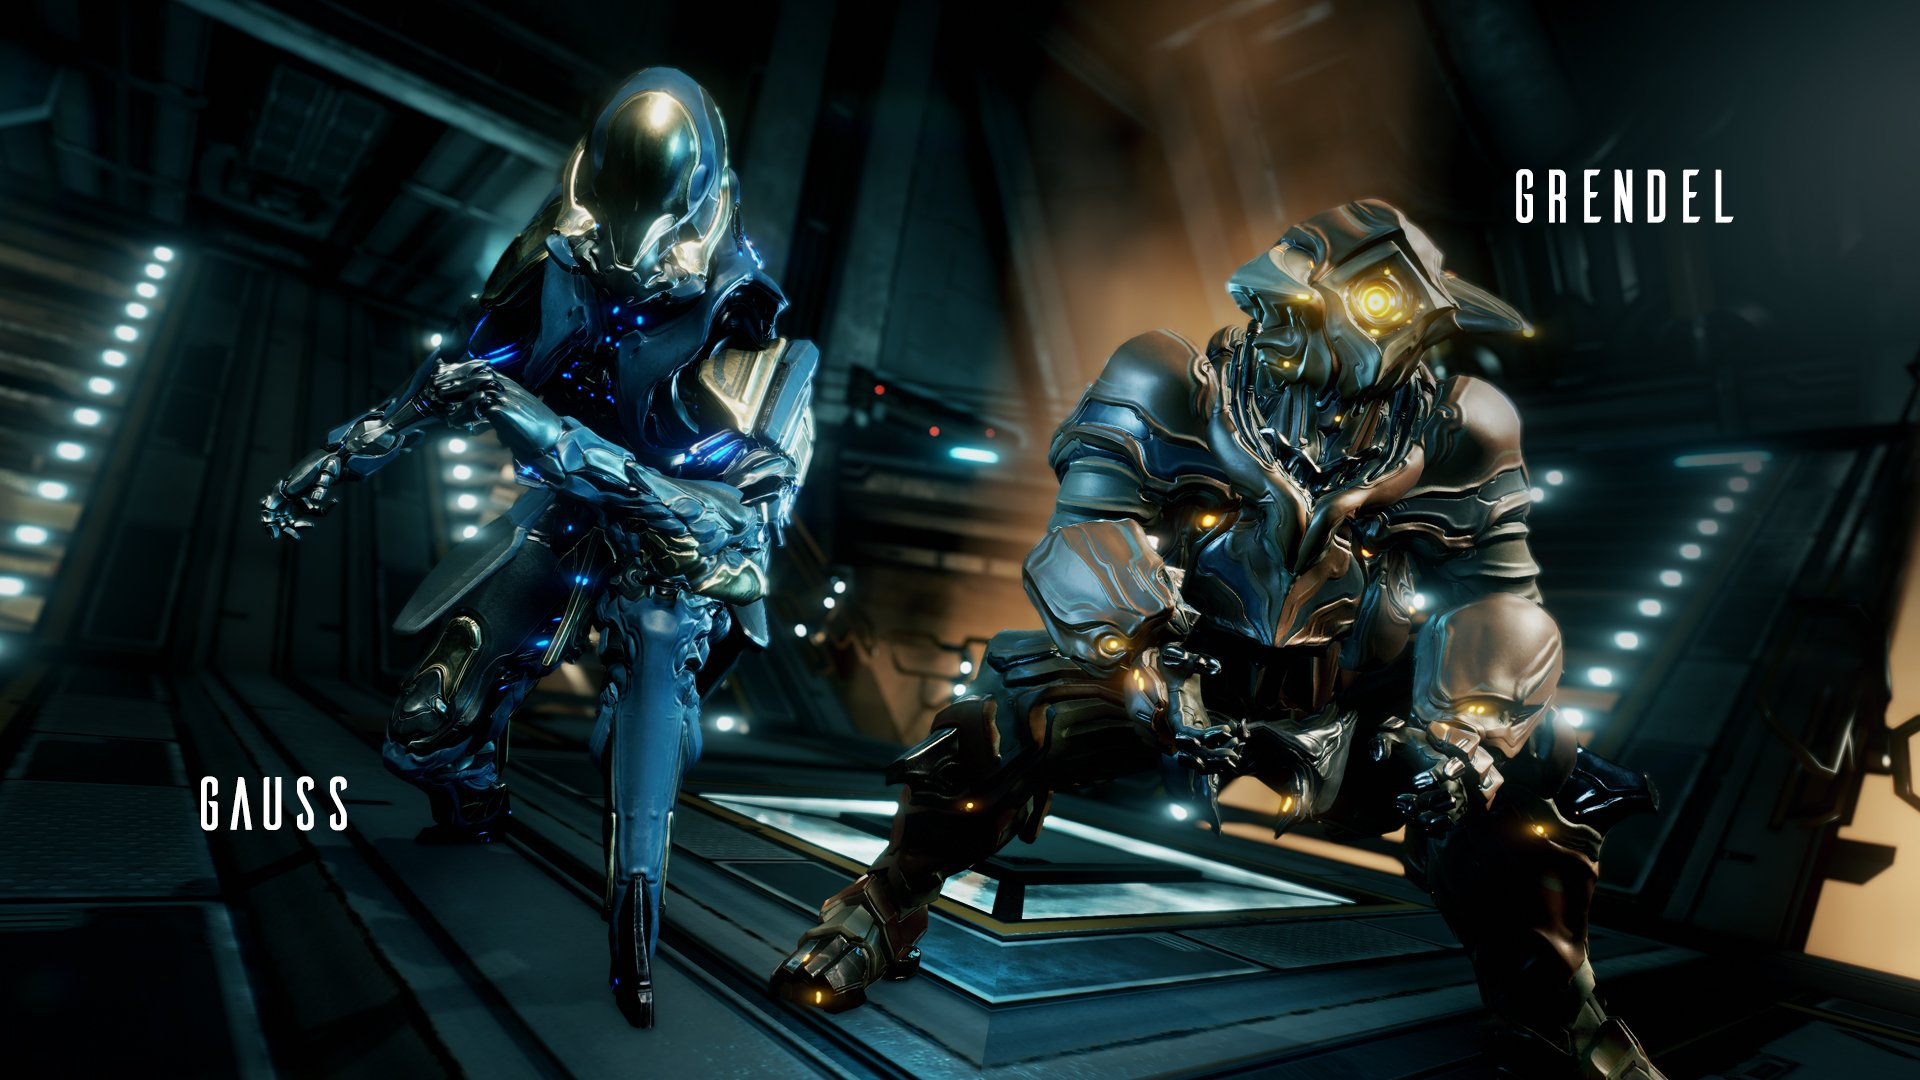 Digital Extremes showed off the designs for their two new Warframes, Grendel and Gauss at TennoCon 2019.